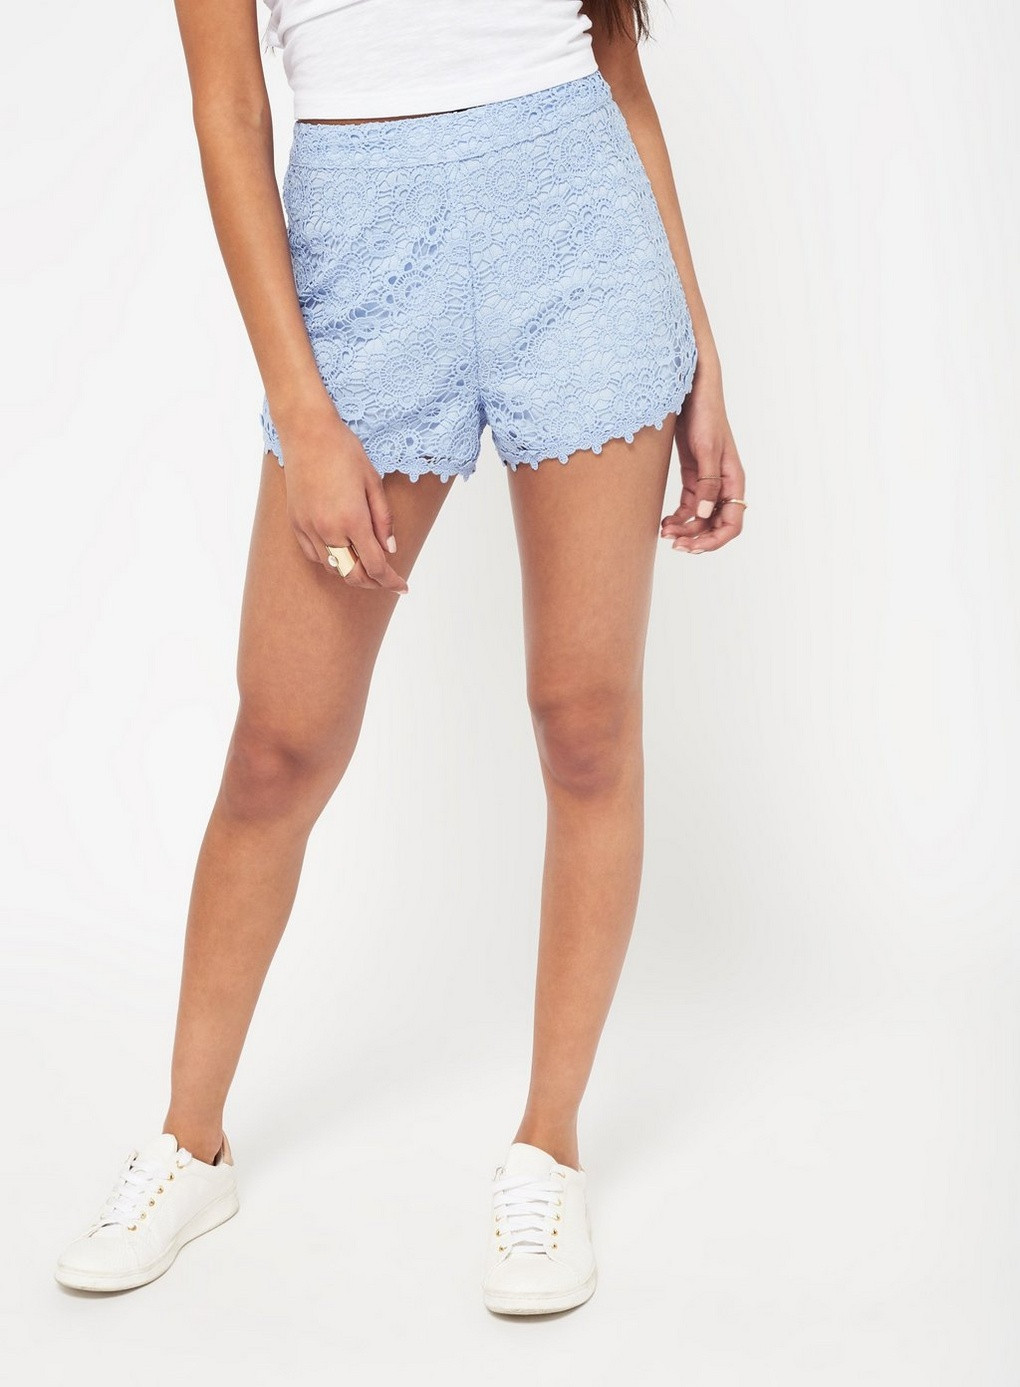 Lace Crochet Shorts Inspirational Blue Crochet Lace Shorts View All Clothing Miss Of Wonderful 49 Images Lace Crochet Shorts